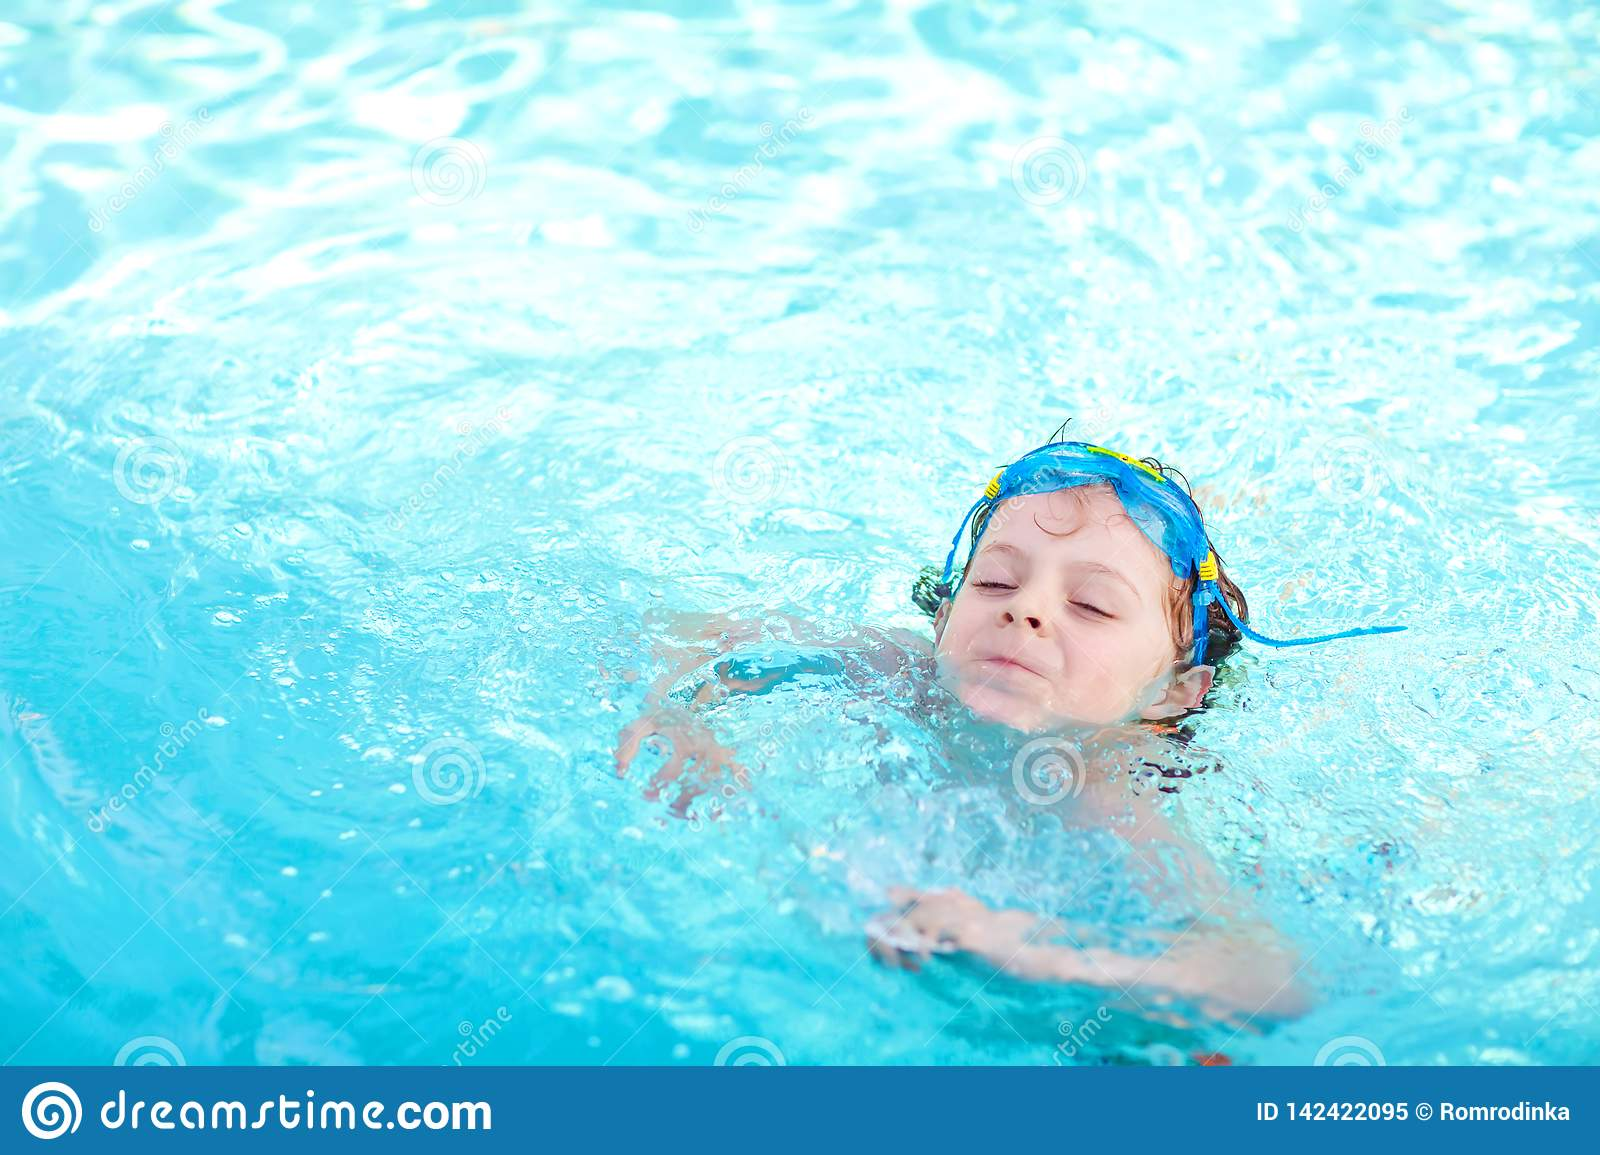 Little preschool kid boy making swim competition sport. Kid with swimming goggles reaching edge of the pool . Child